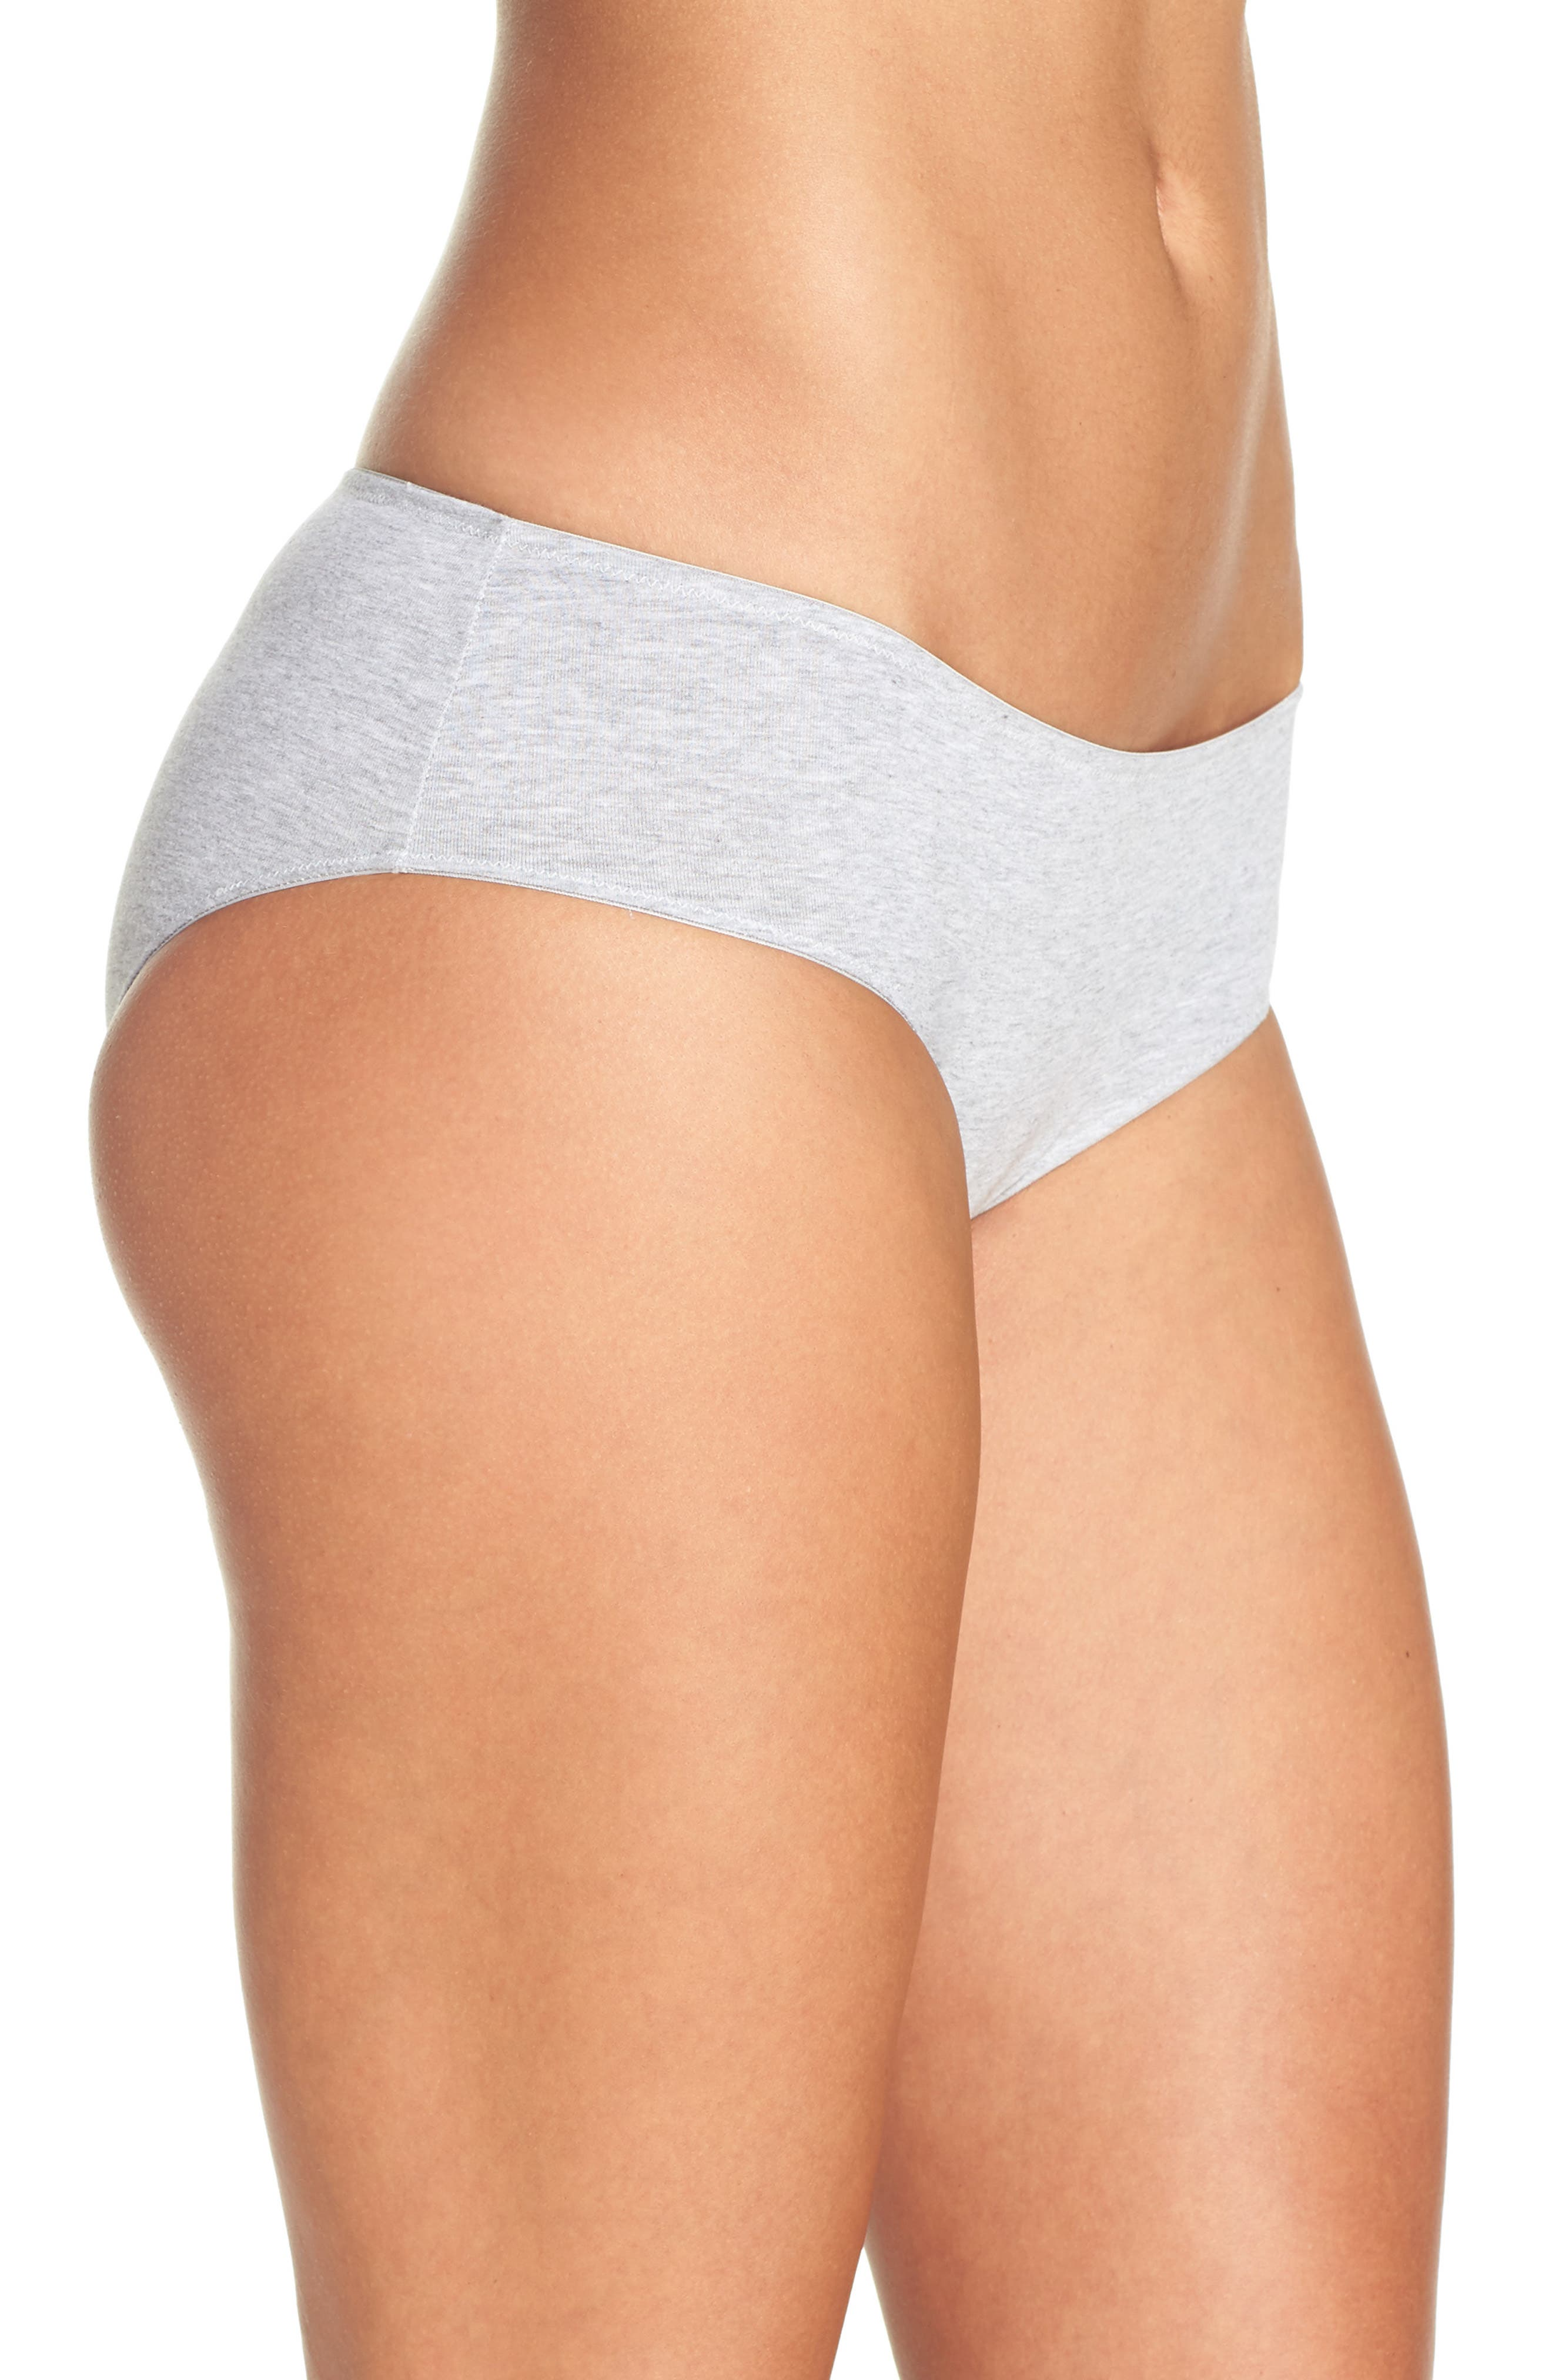 Hipster Panties,                             Alternate thumbnail 3, color,                             Heathered Pelican